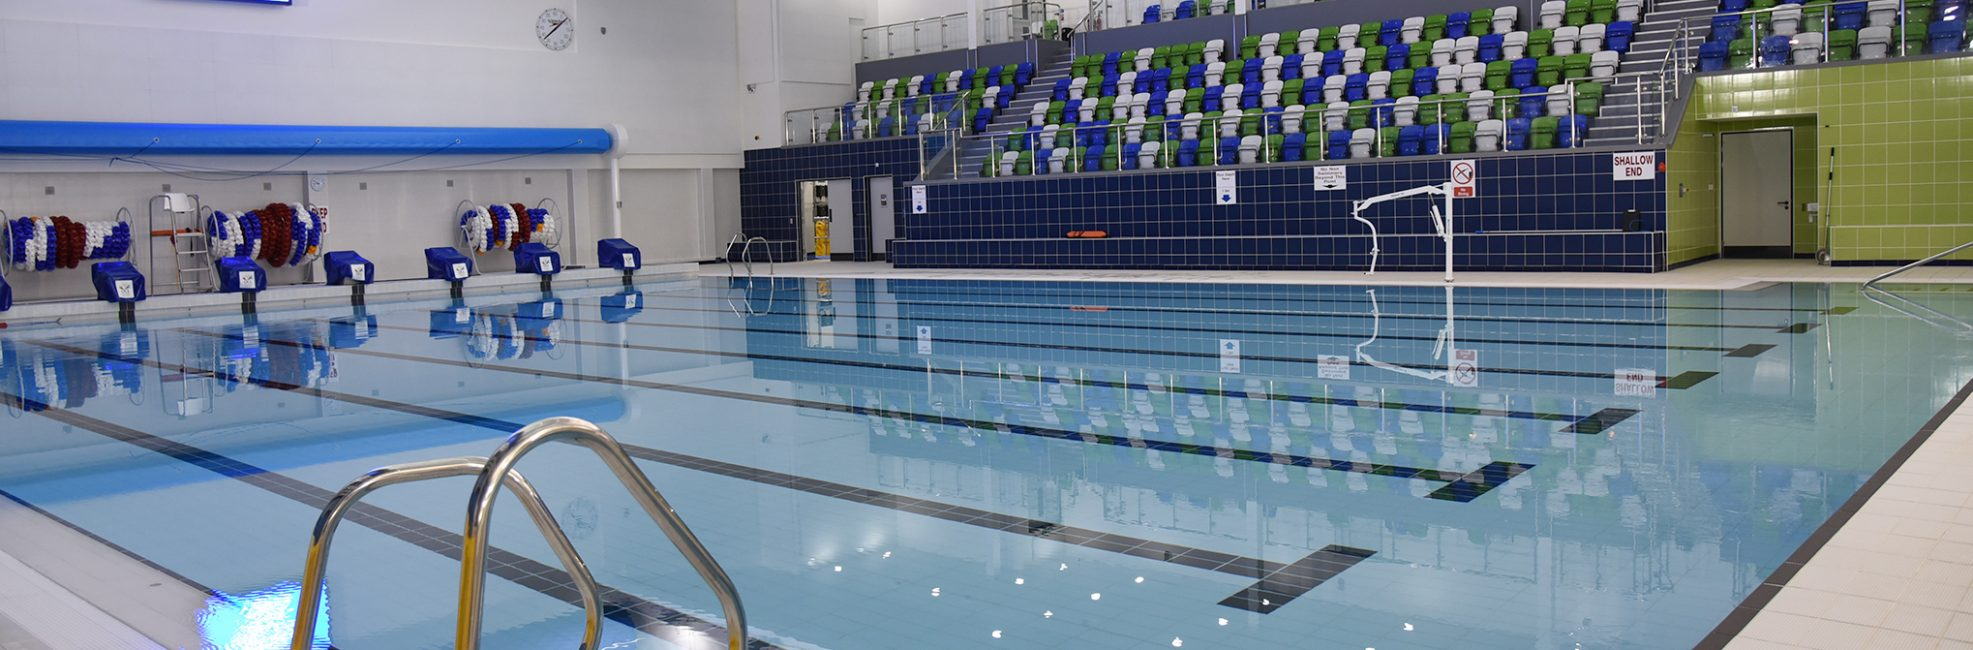 New oldham leisure centre gym swim classes sauna - Bray swimming pool and leisure centre ...